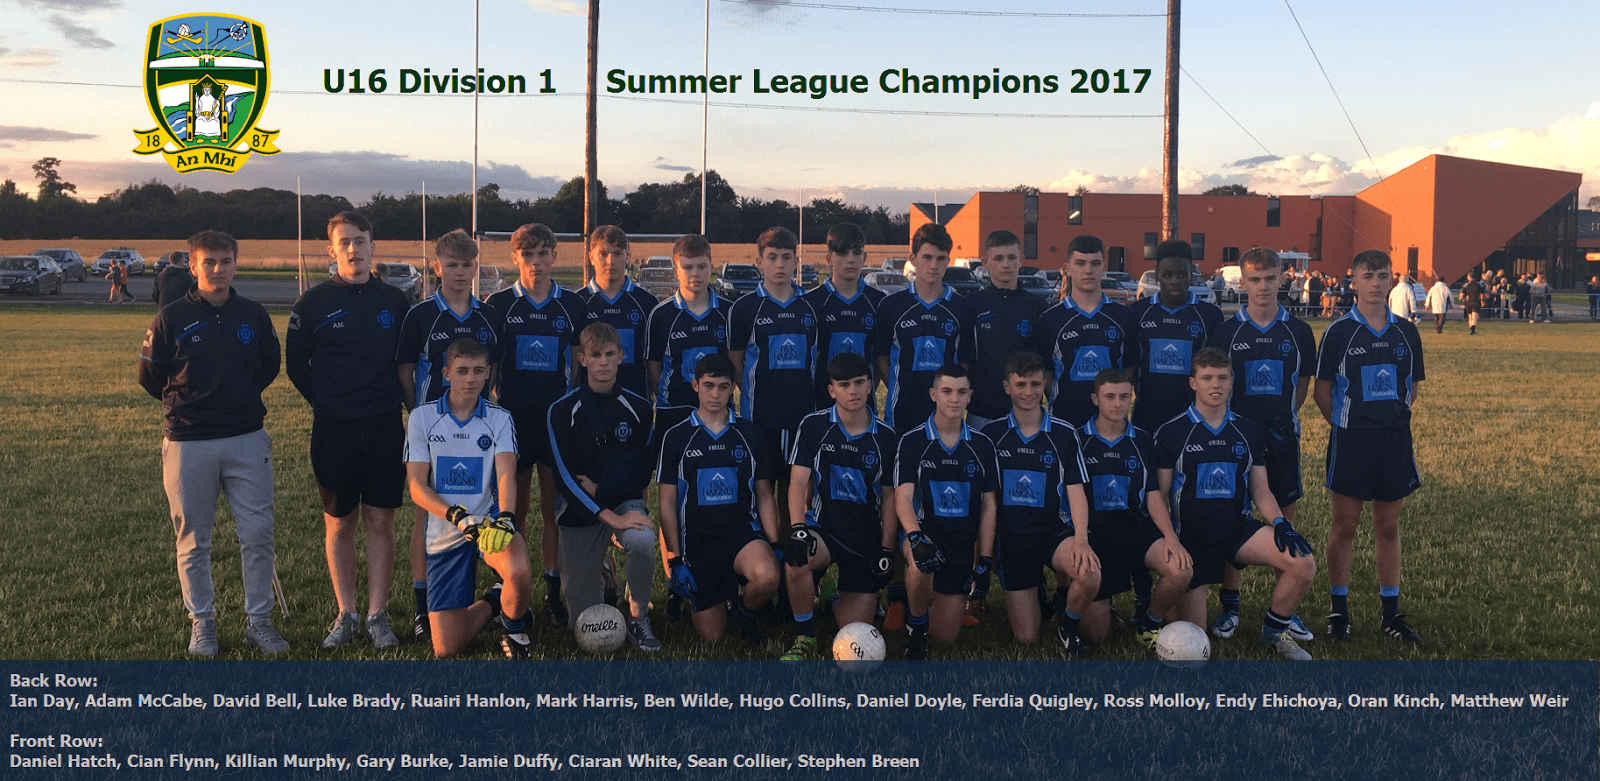 U16 Div 1 summer league champions